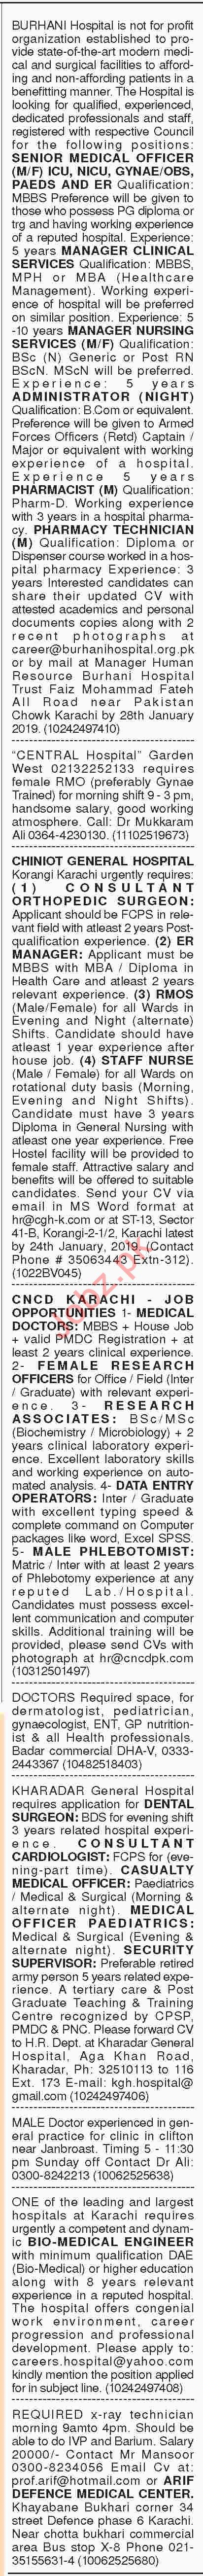 Dawn Sunday Classified Ads 13th Jan 2019 for Medical Staff